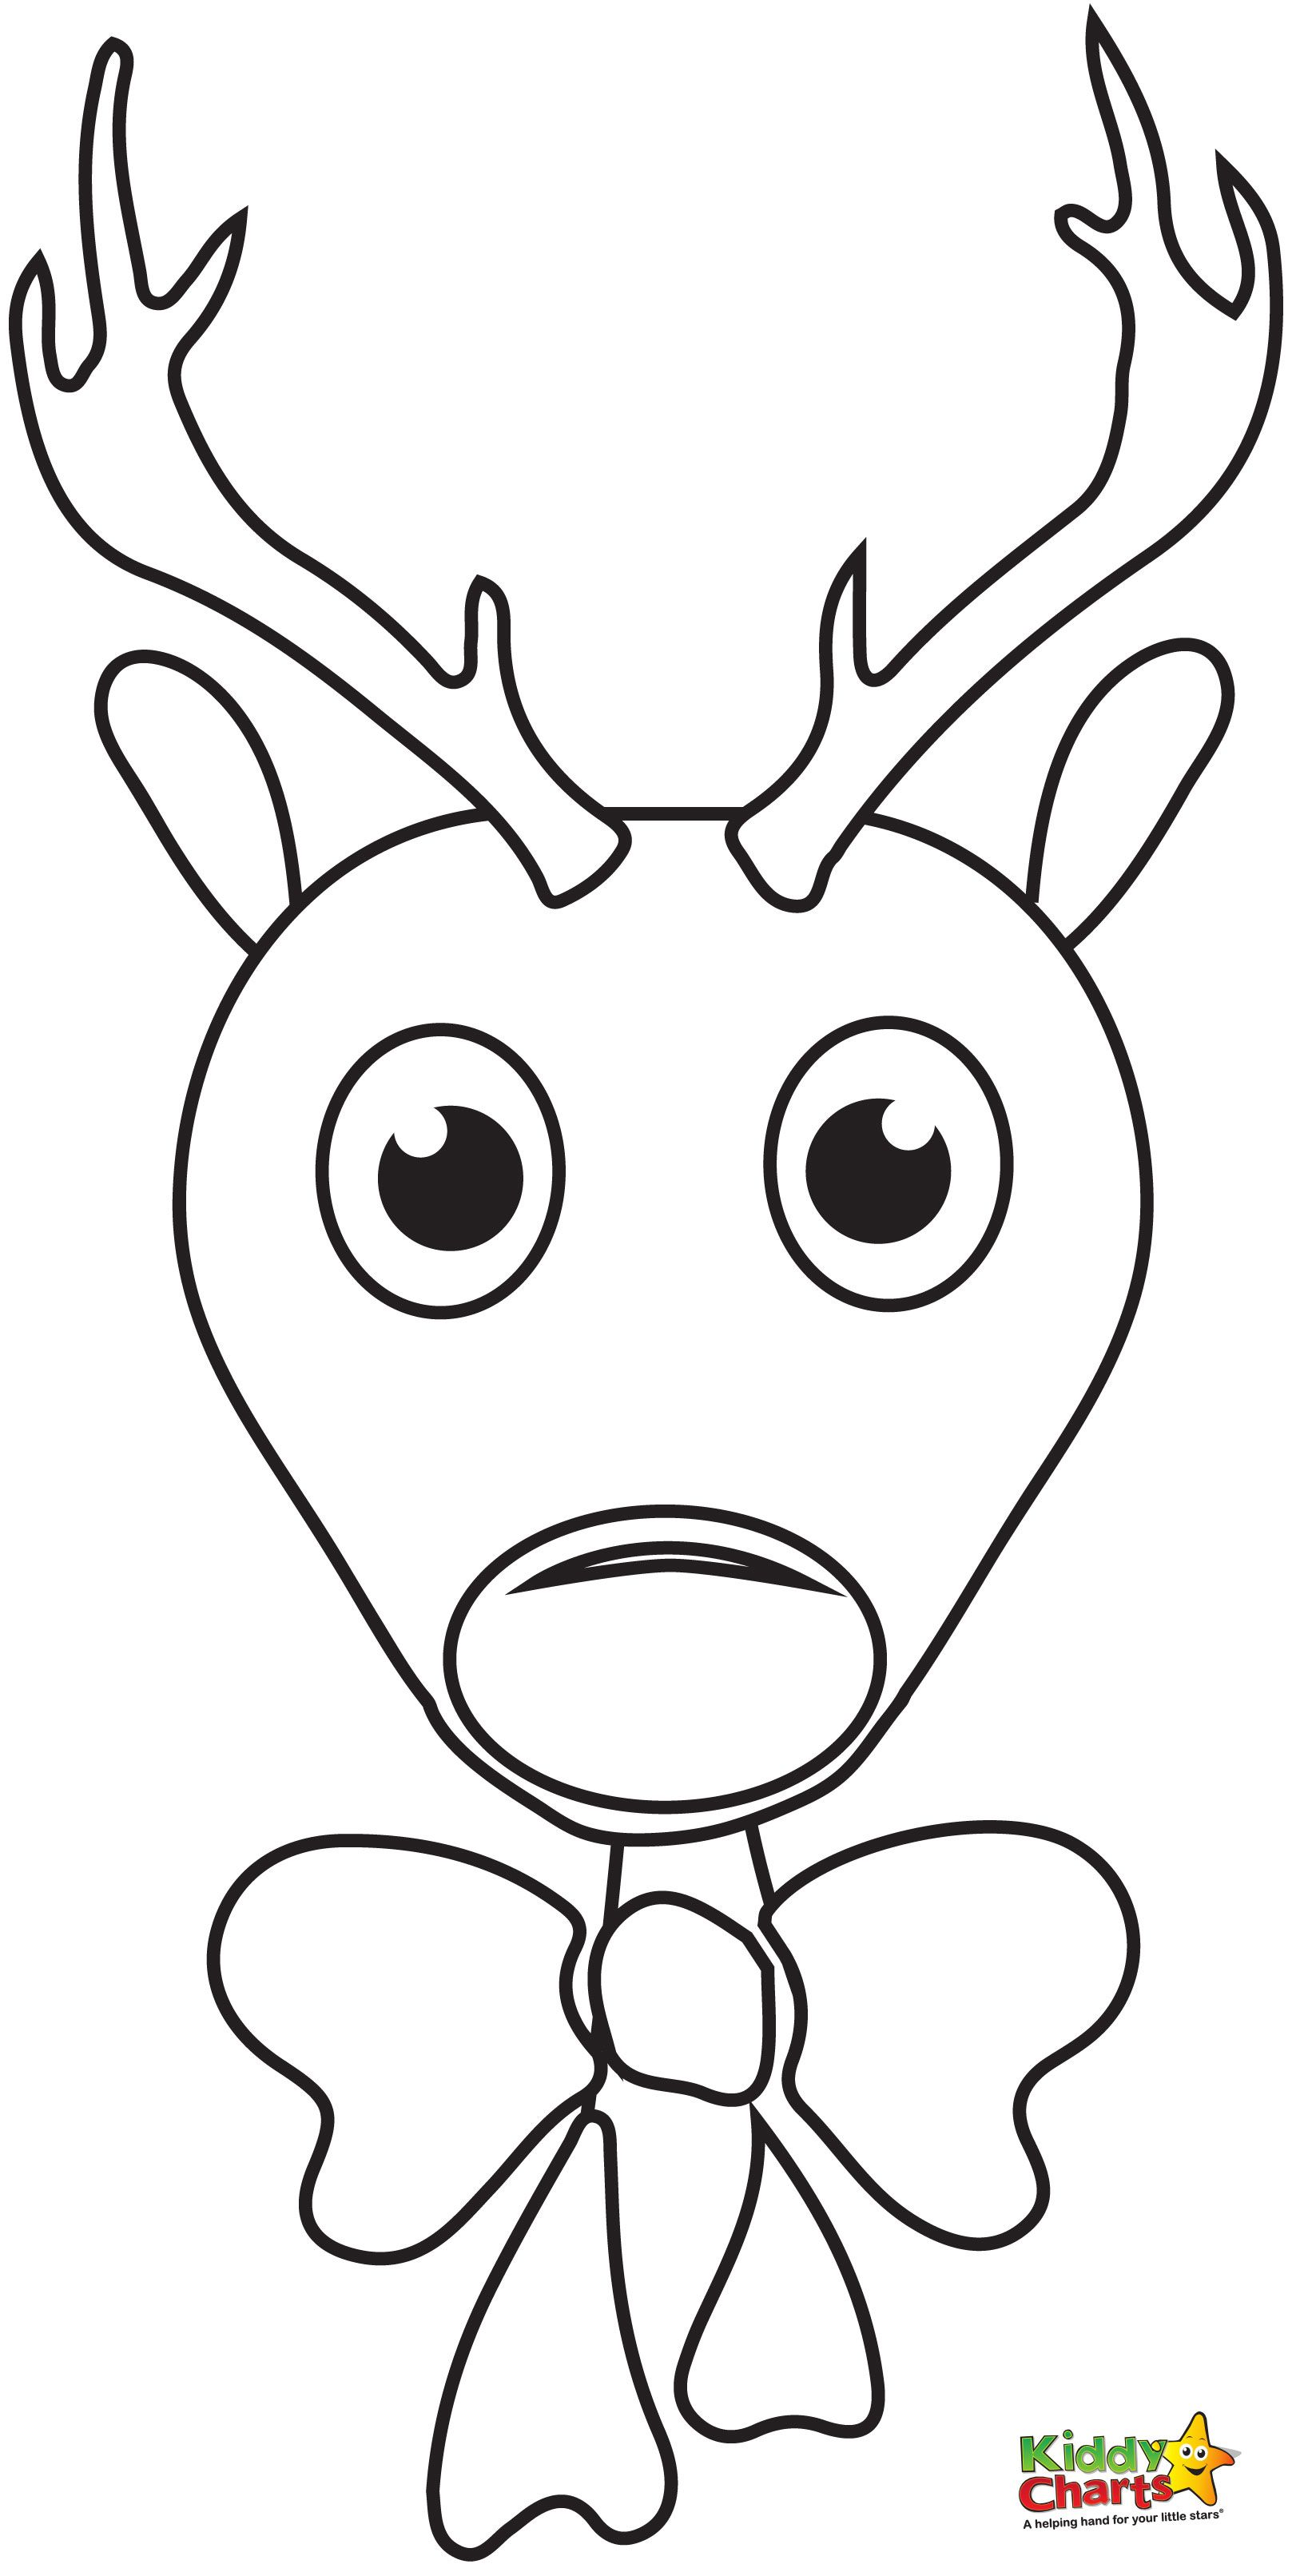 Rudolph Coloring Pages Rudolph Coloring Pages Christmas Coloring Pages Santa Coloring Pages